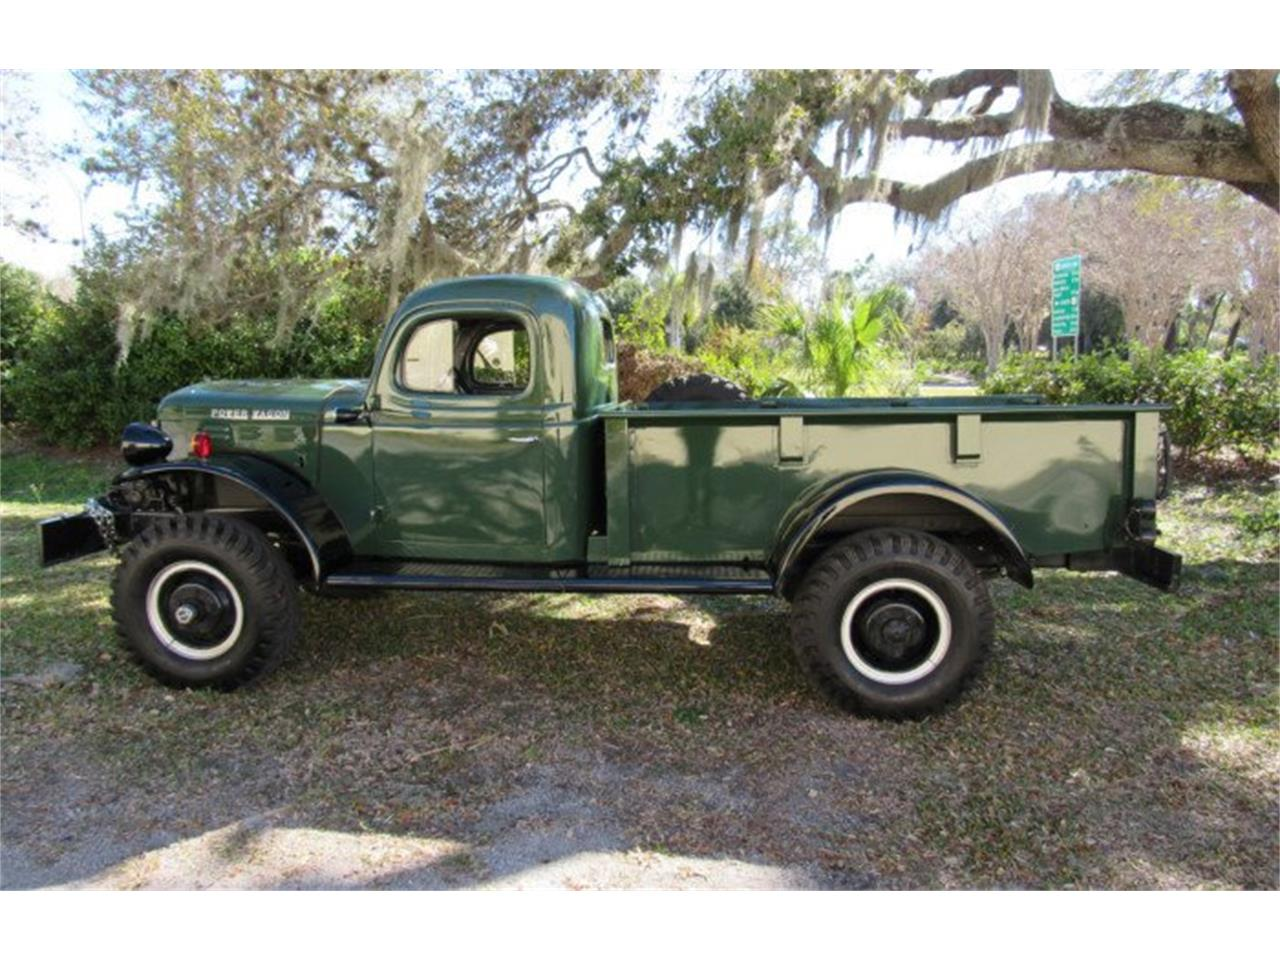 Large Picture of '49 Dodge Power Wagon located in Punta Gorda Florida Auction Vehicle - PH13